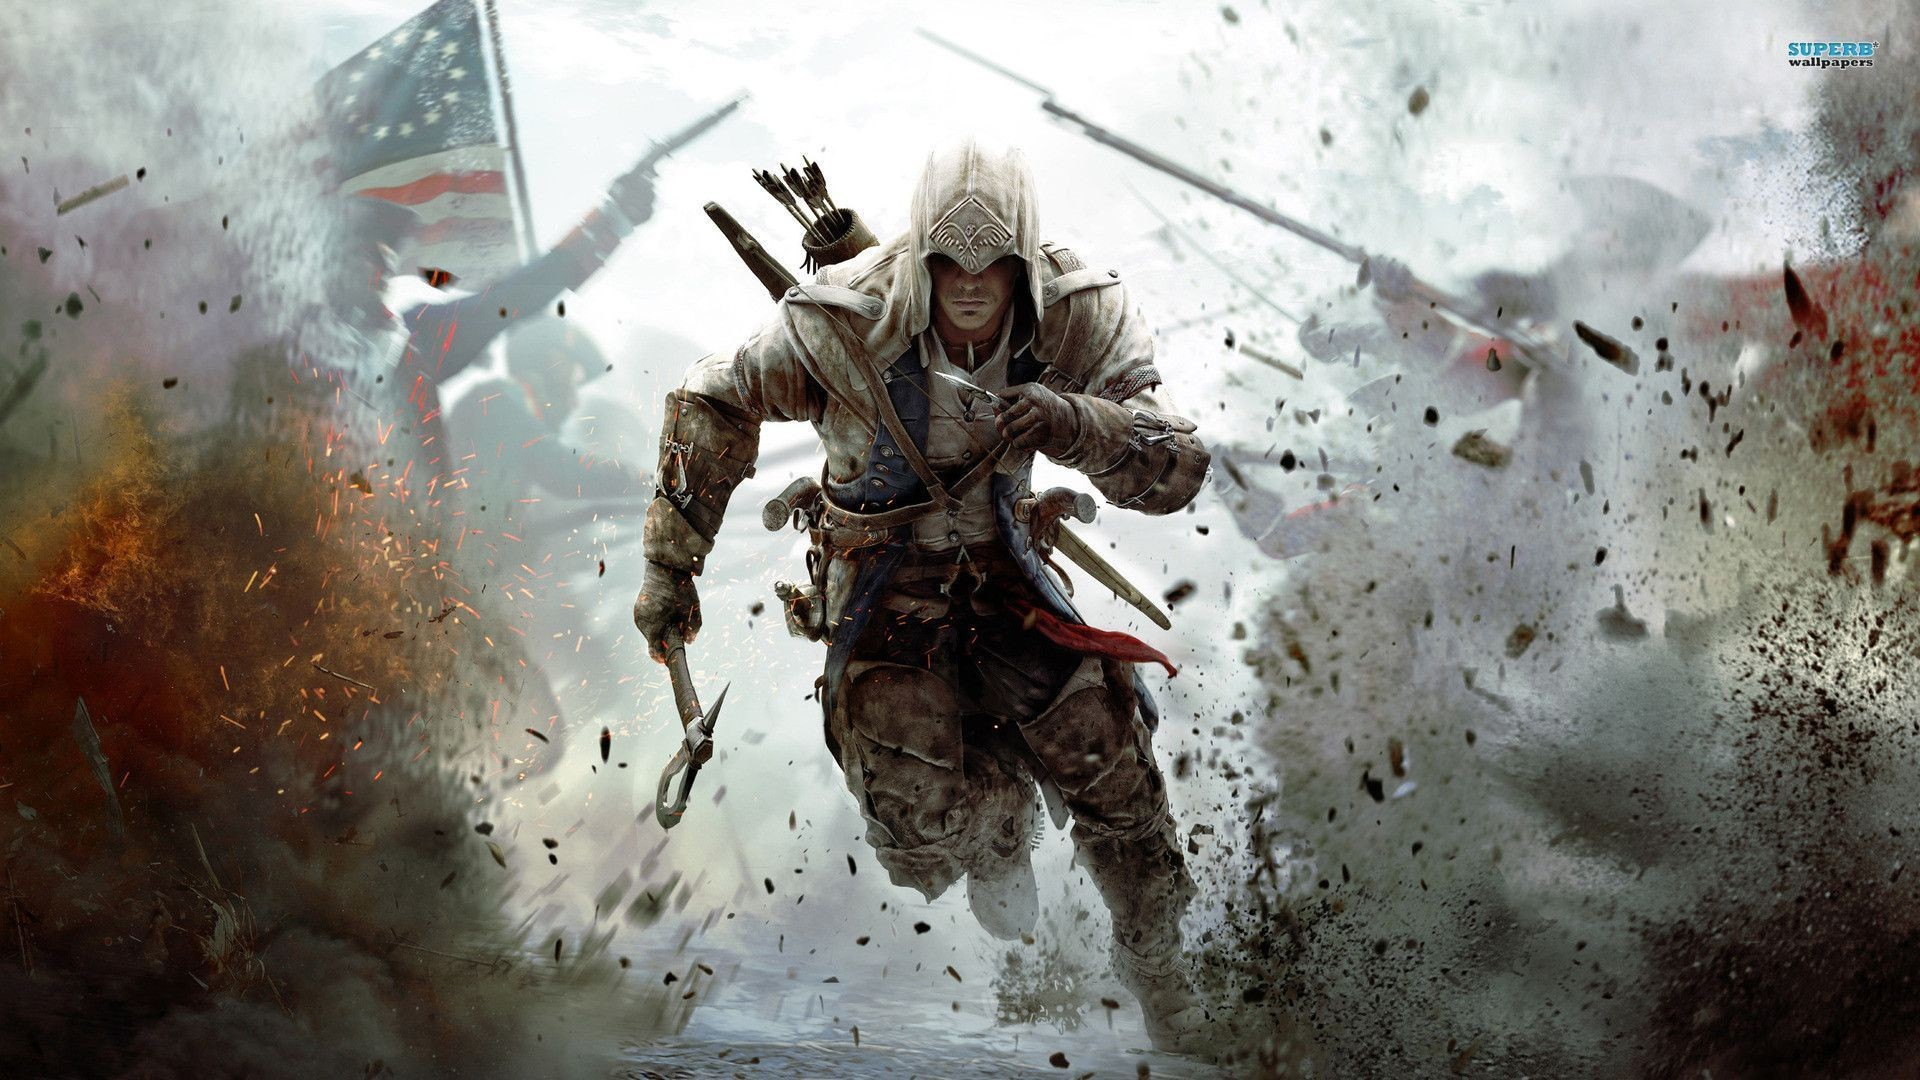 Running Assassin's Creed Wallpaper Simple White Classic Black Dust Game  Collection Themes